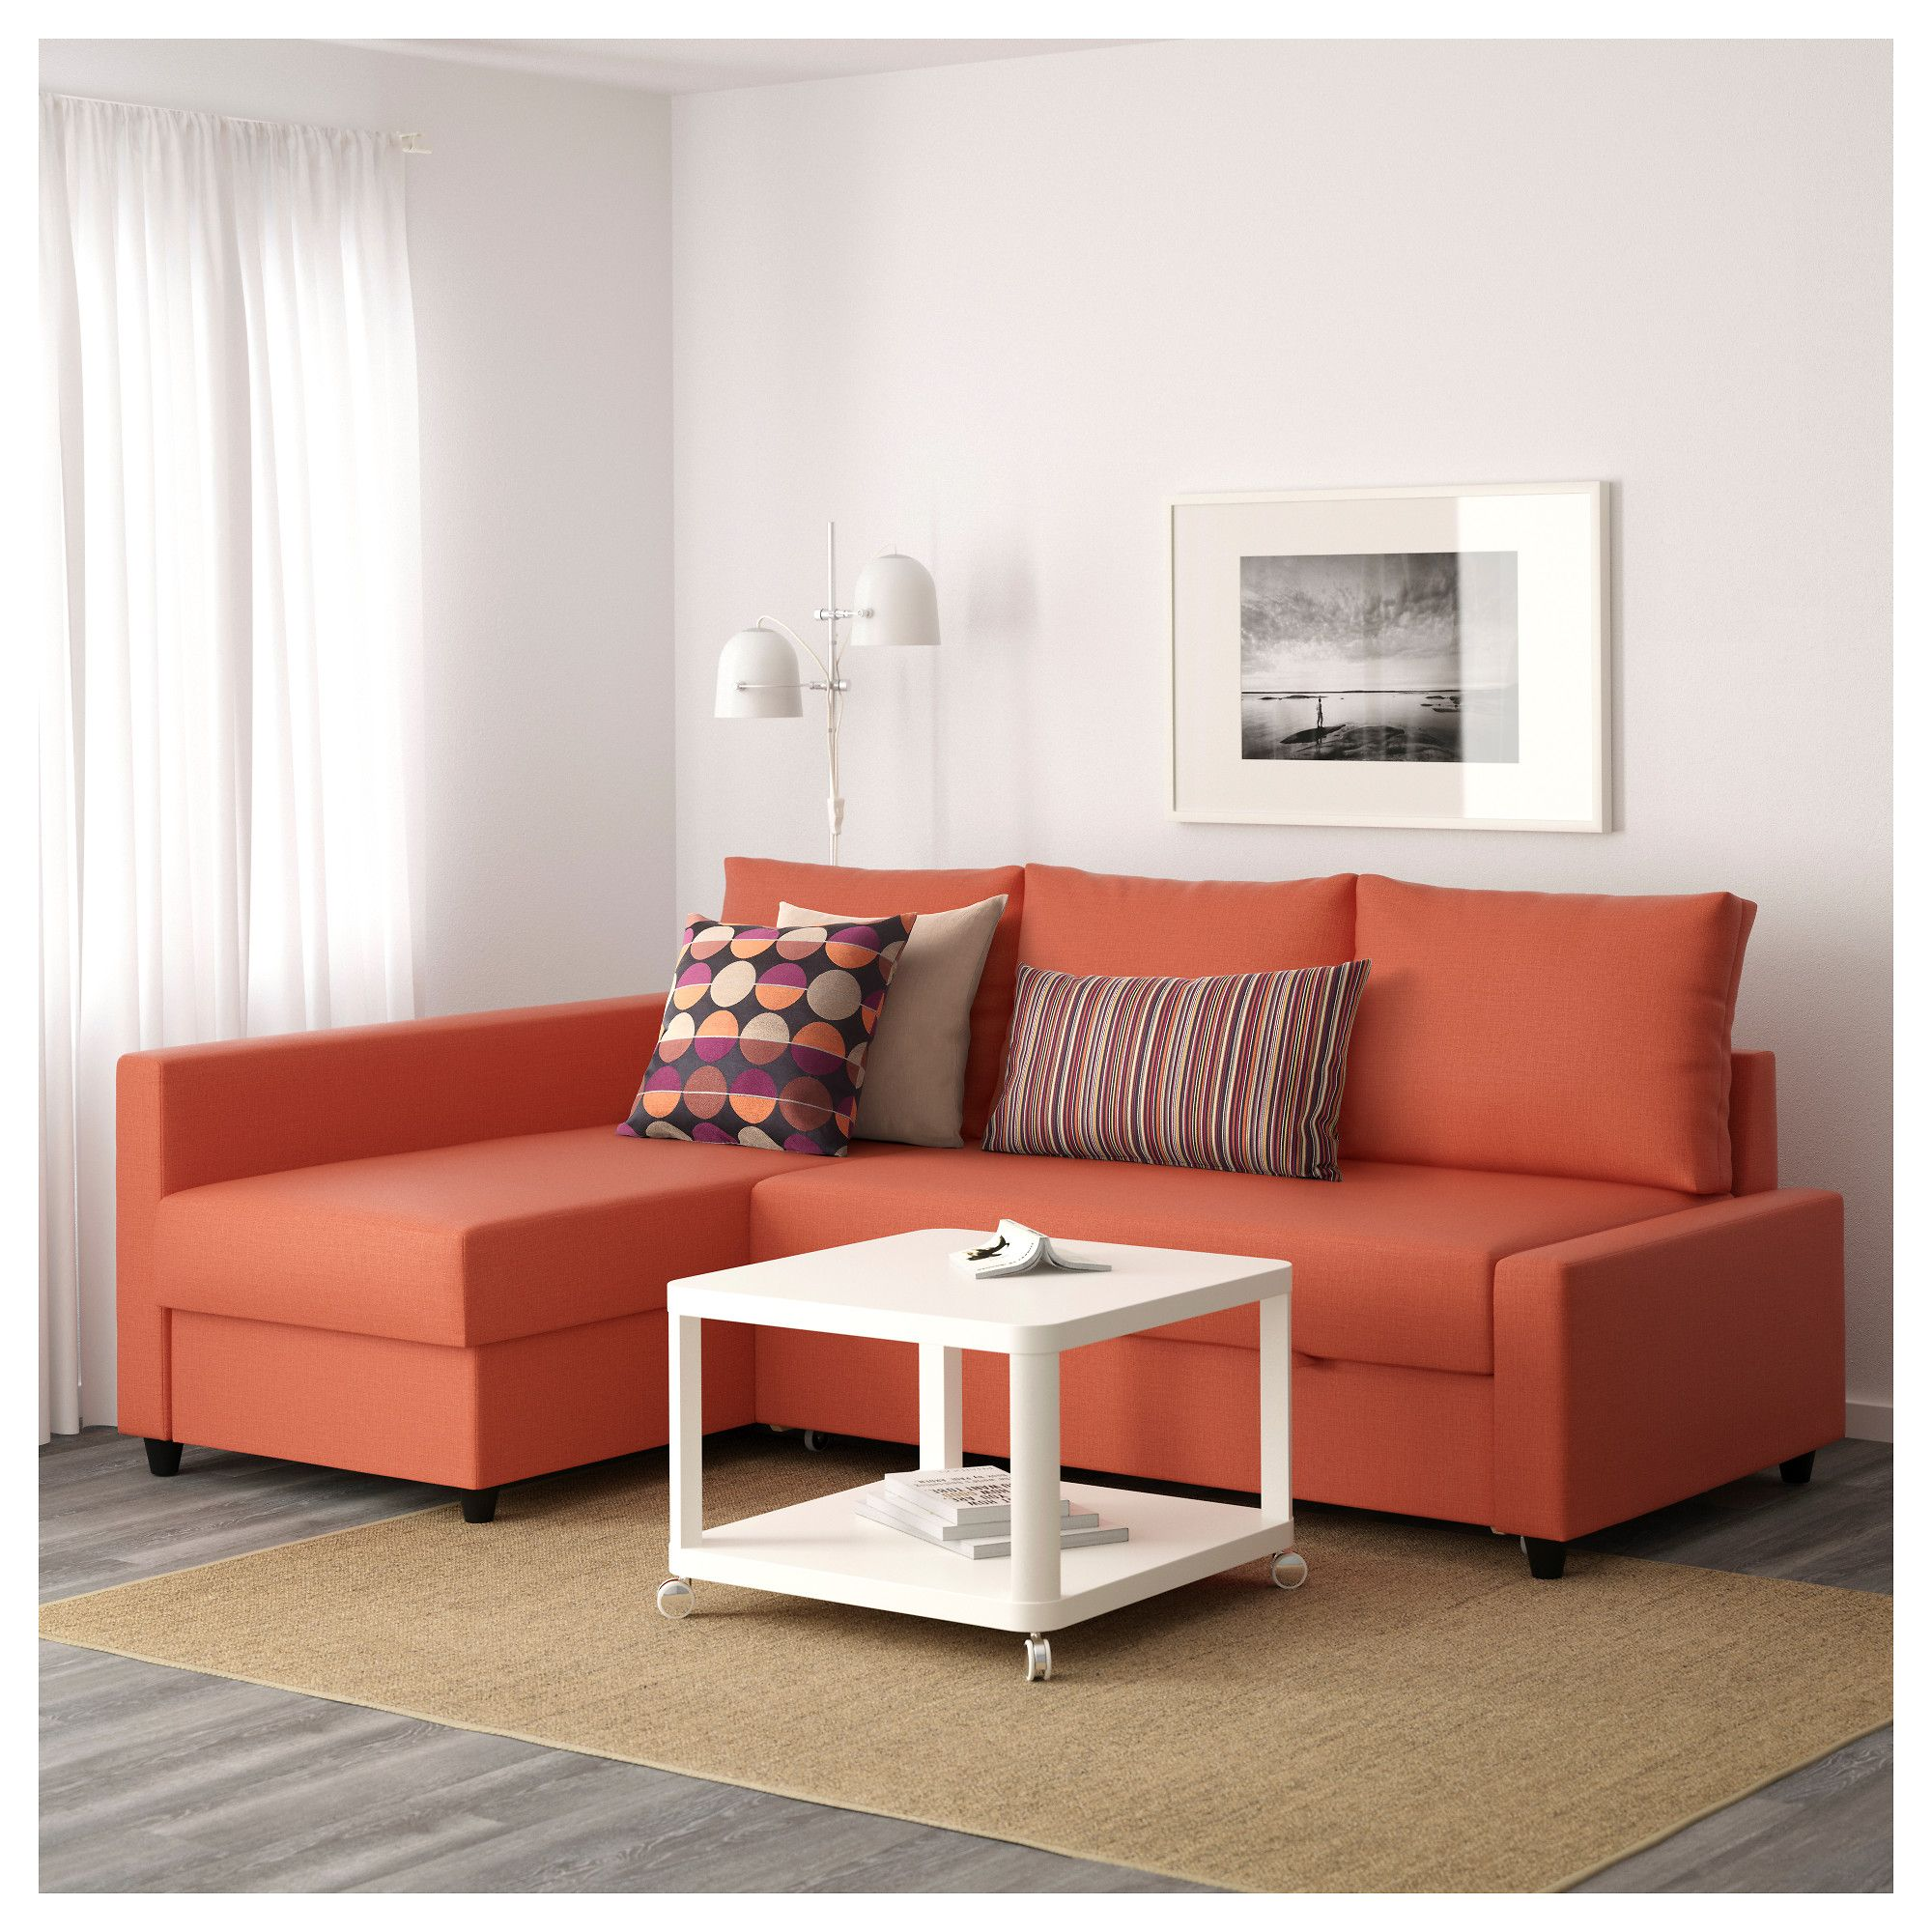 Furniture And Home Furnishings Sofa Bed With Chaise